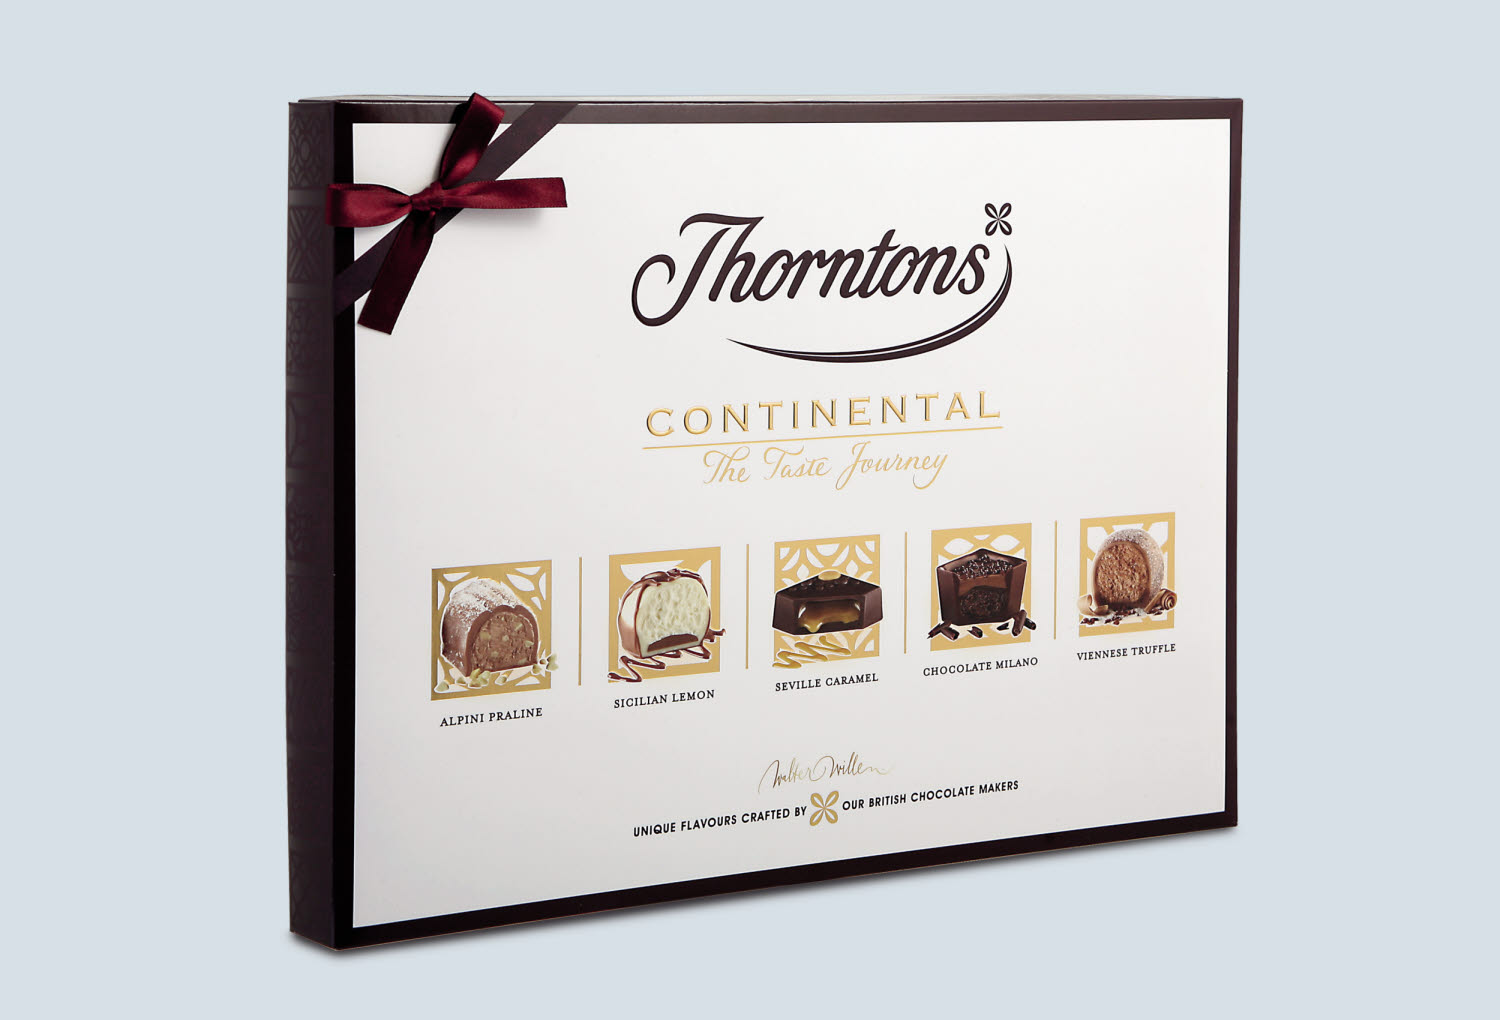 Thorntons confectionary packaging